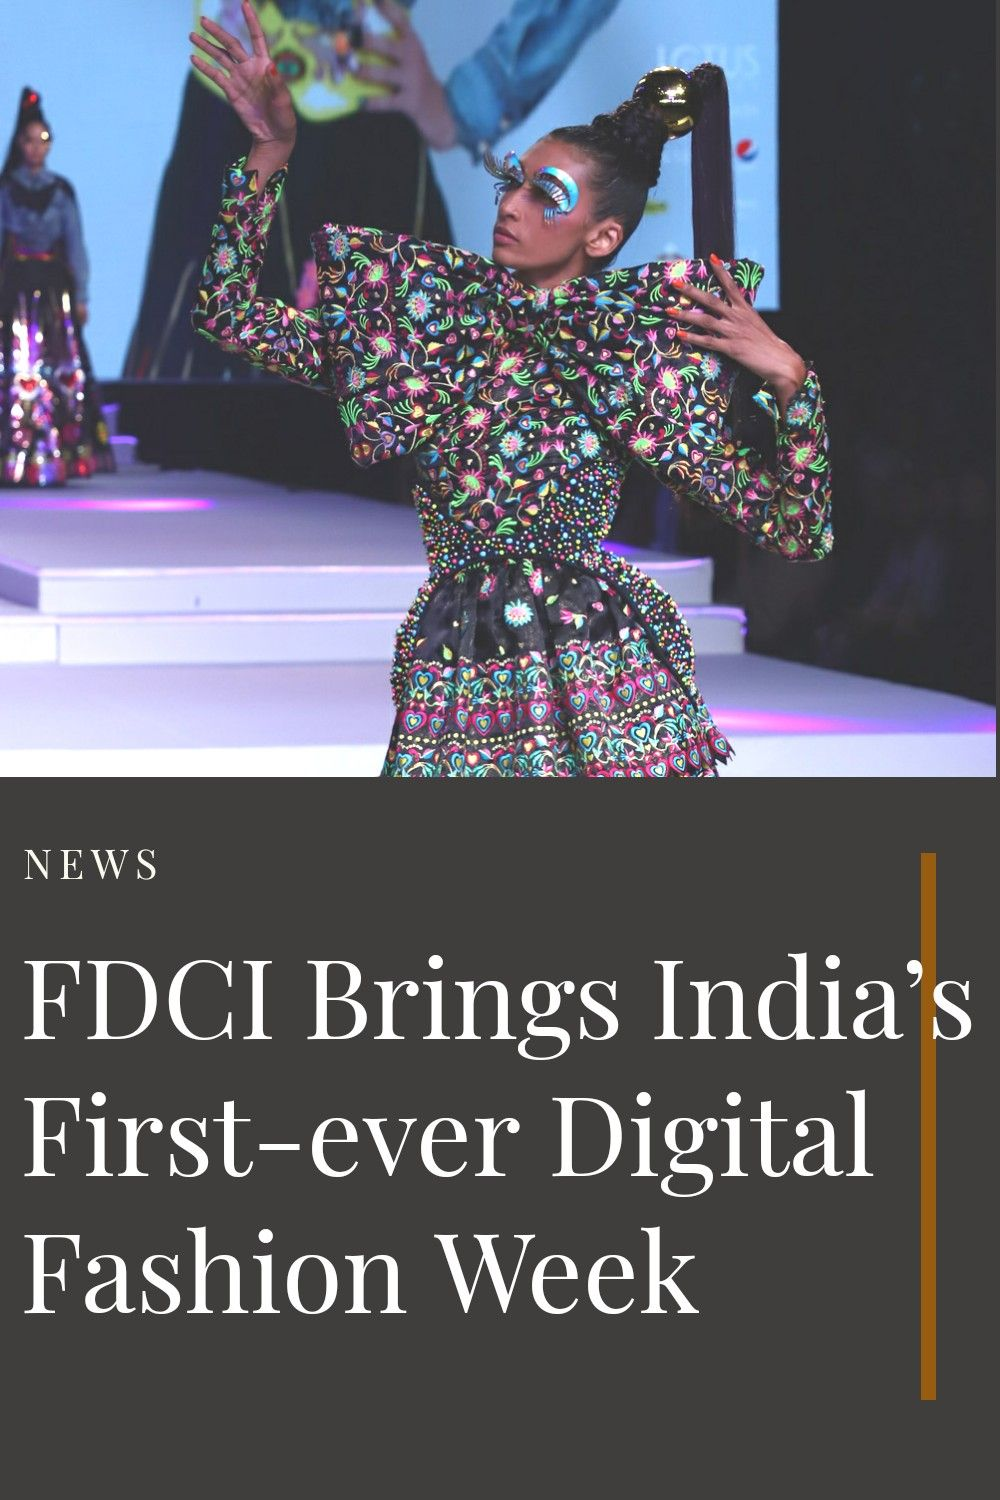 The Indian #fashionindustry has been extremely quick in responding to the pandemic. Considering the deadly impacts of COVID-19, FDCI decided to step up in the game and take the digital path for the coming #fashionweek. It would be India's first digital #fashionweek!  #fashionweek #Fashionshow #fashion #fashionrunway #FDCI #covid19 #digital #Digitalshow #DigitalFashion #Fashionworld #IKnockFashion #ElloraCreationsPVTLTD